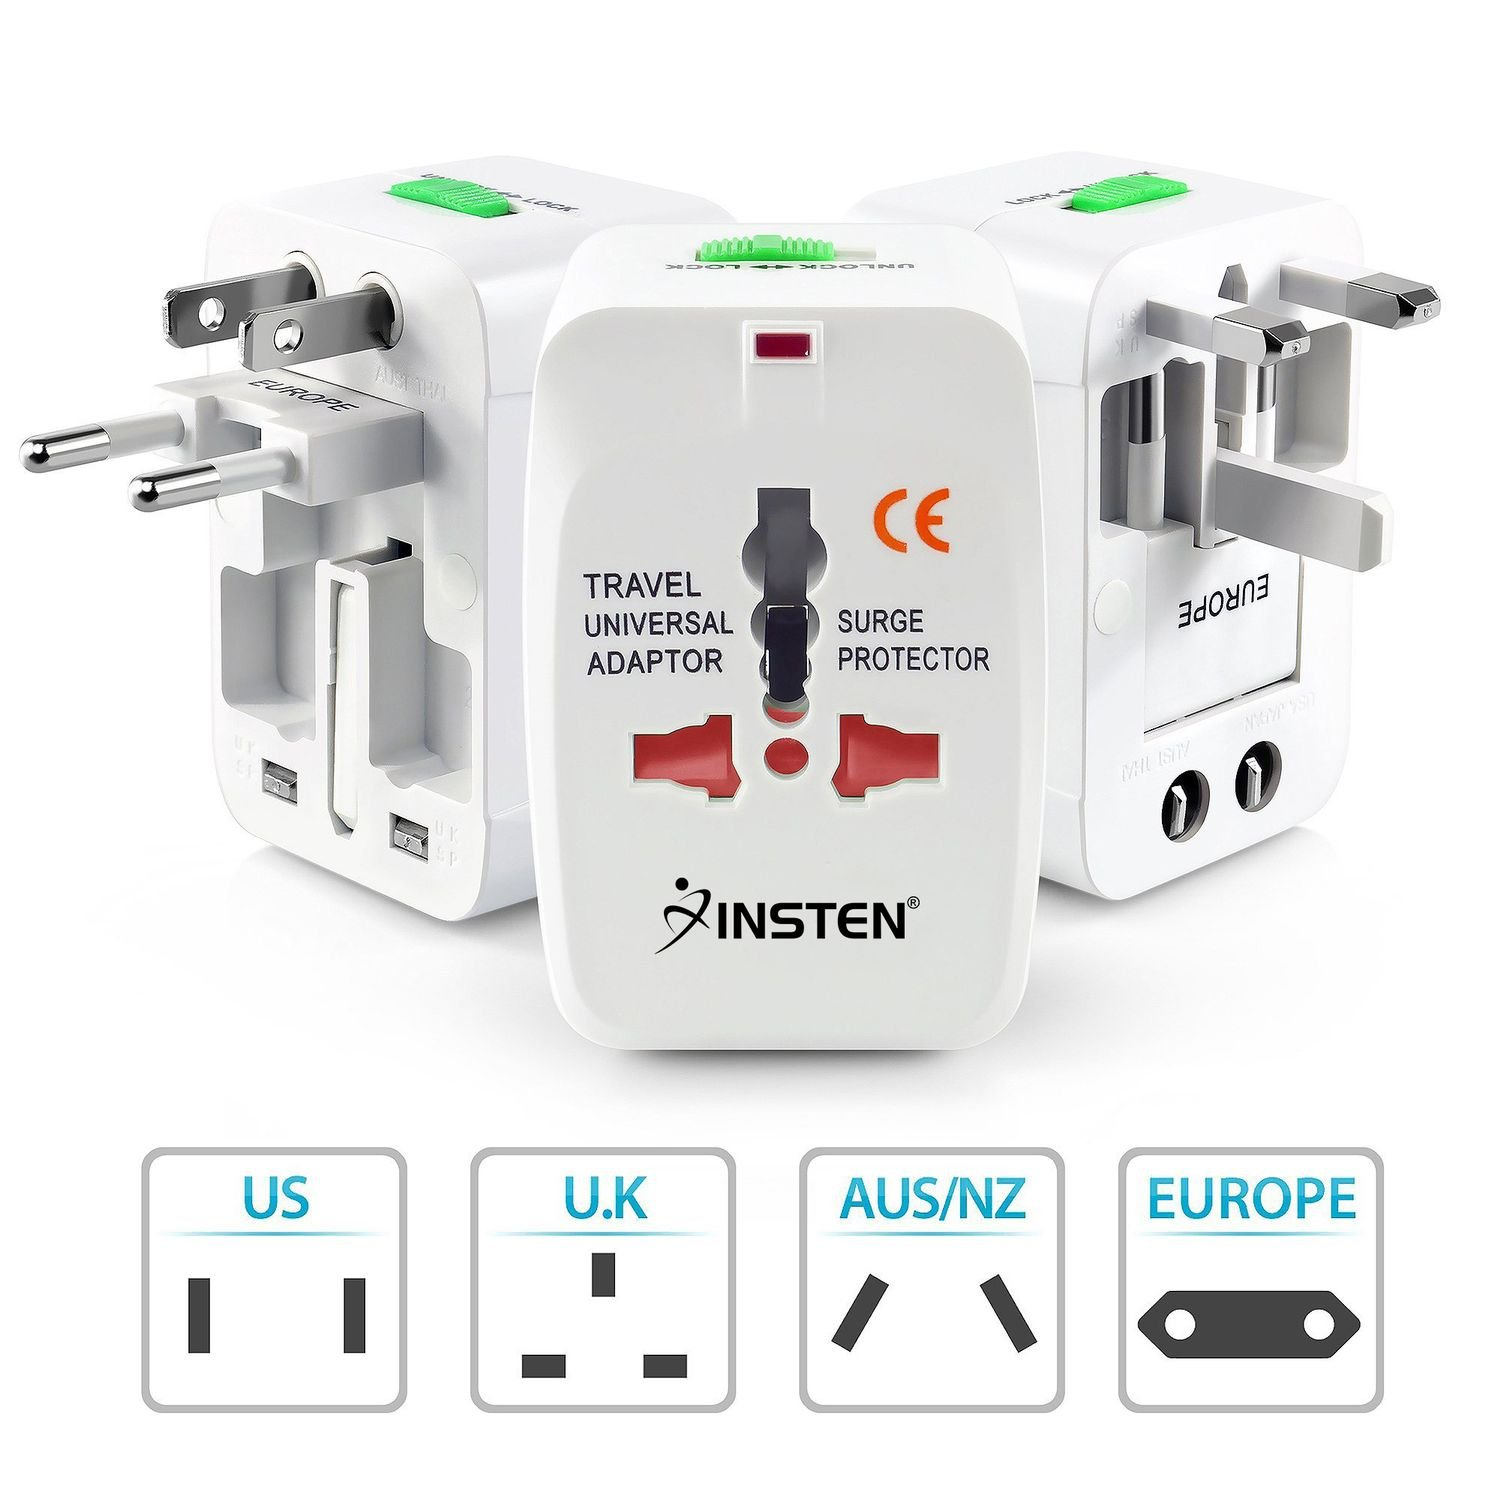 Generic World Wide Travel Charger Adapter Plug White Buy Telephone Wiring Diagram Australia Online At Low Price In India